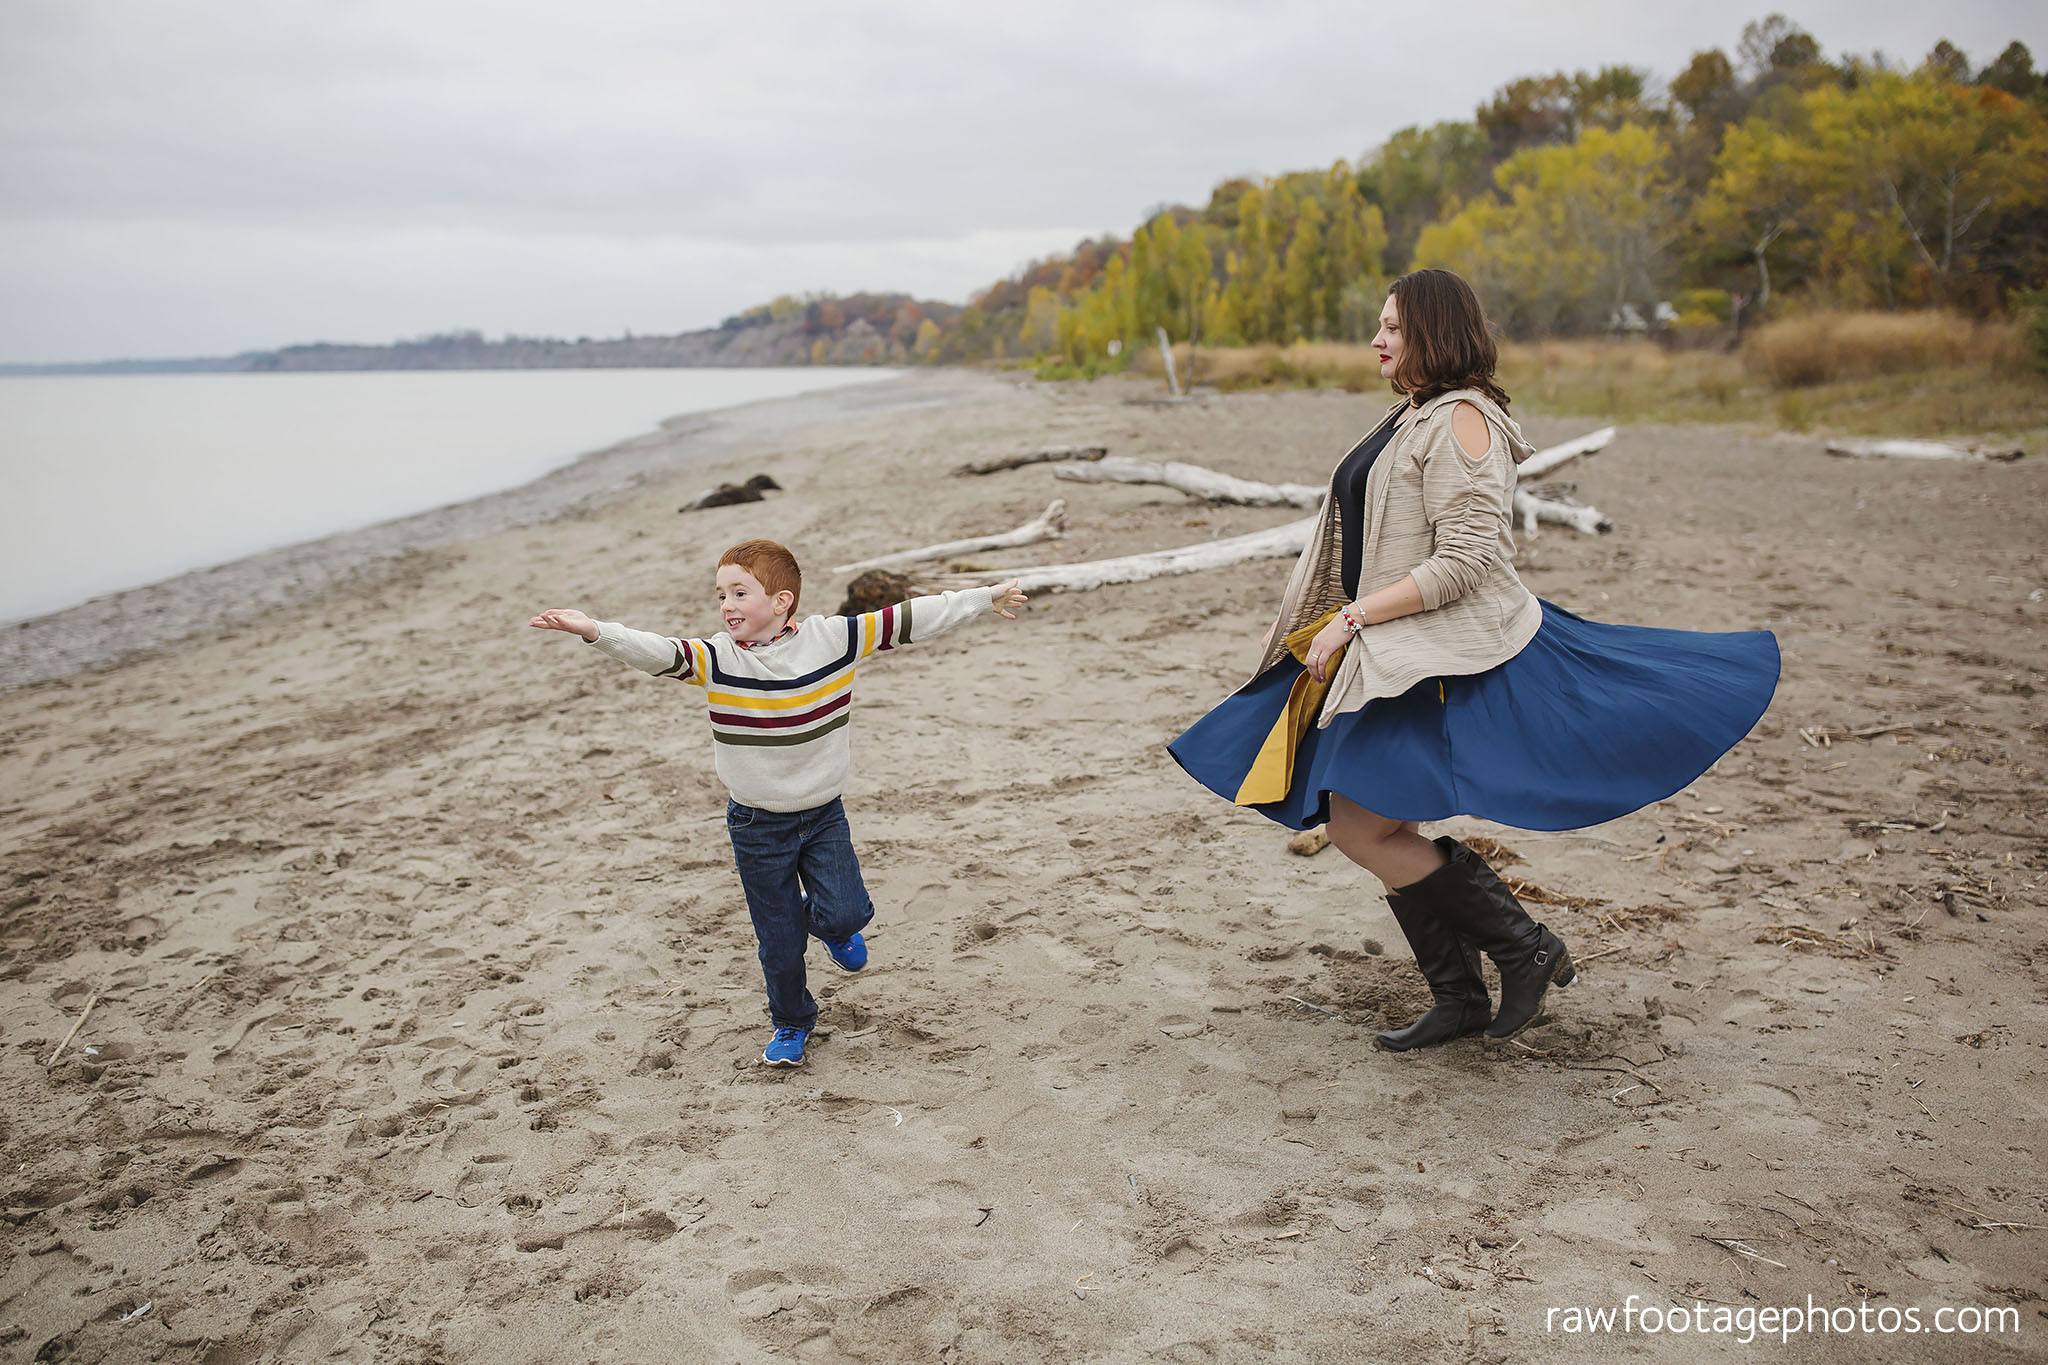 london_ontario_family_photographer-port_stanley_photography-raw_footage_photography-family_photos-beach_photos-fall_family_photos-lifestyle_family_photography-candid_photographer026.jpg